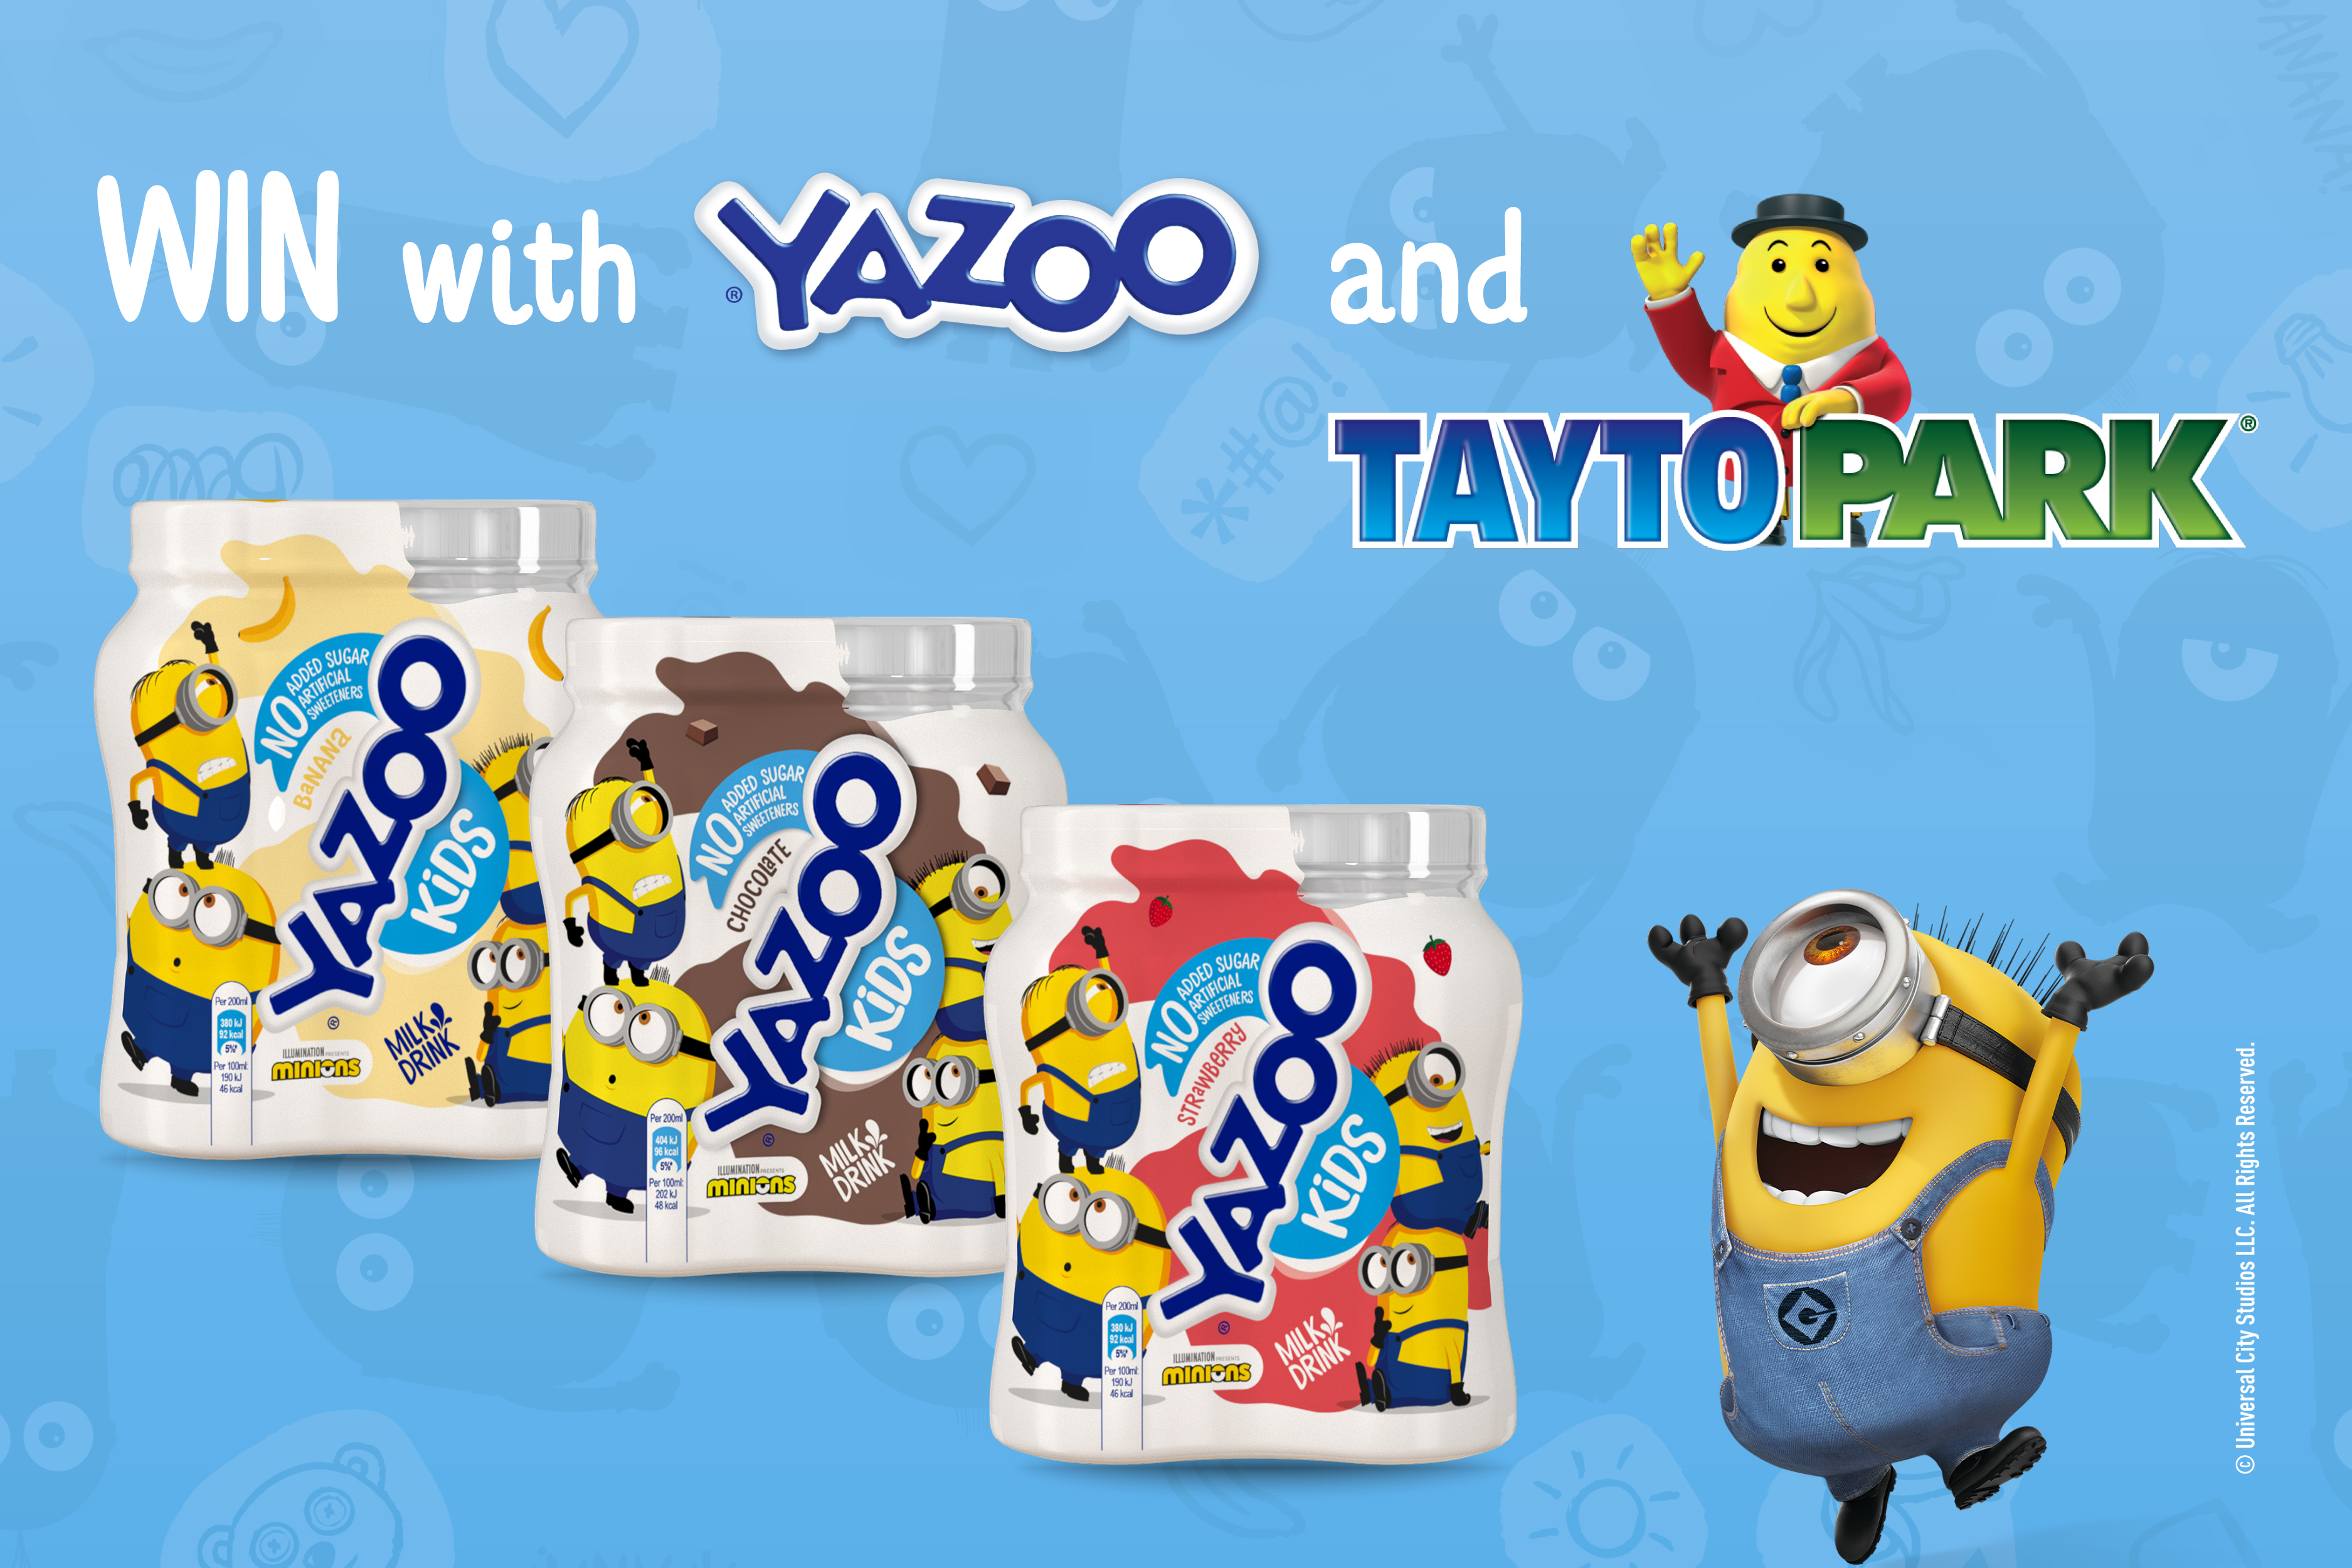 YAZOO KiDS team up with Tayto Park for Today FM Competition